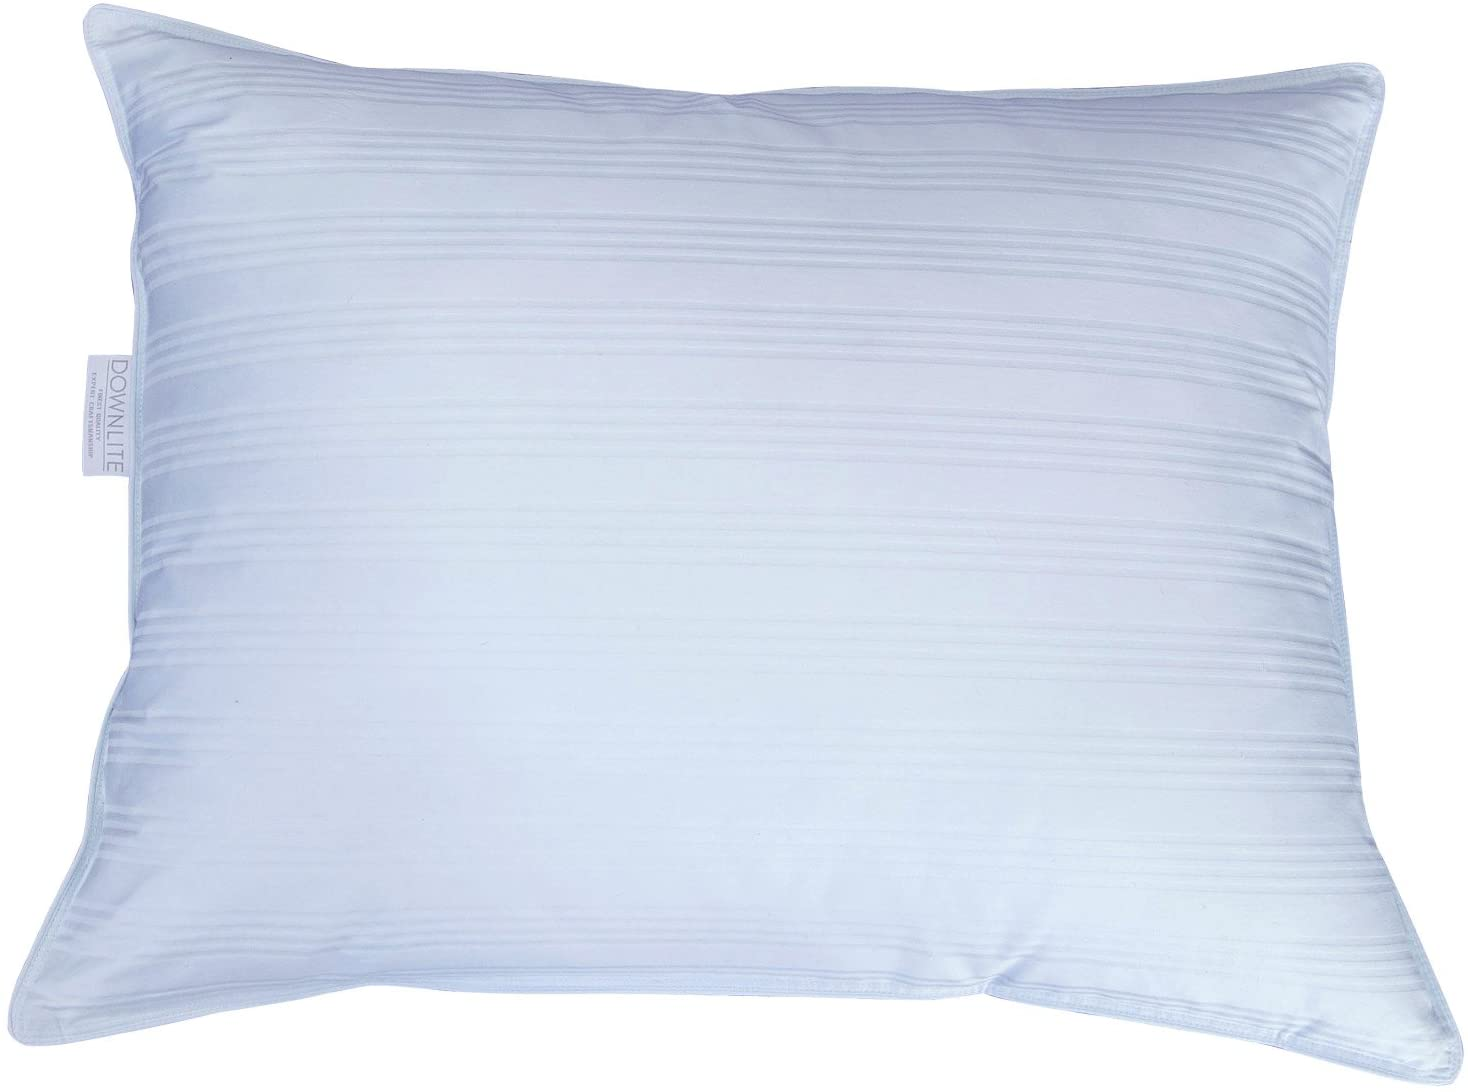 DOWNLITE Extra Soft Low Profile Down Pillow - Great for Stomach Sleepers Only - Very Flat (King - Duck Down) - This is the least filled king size pillow we make - please read reviews!